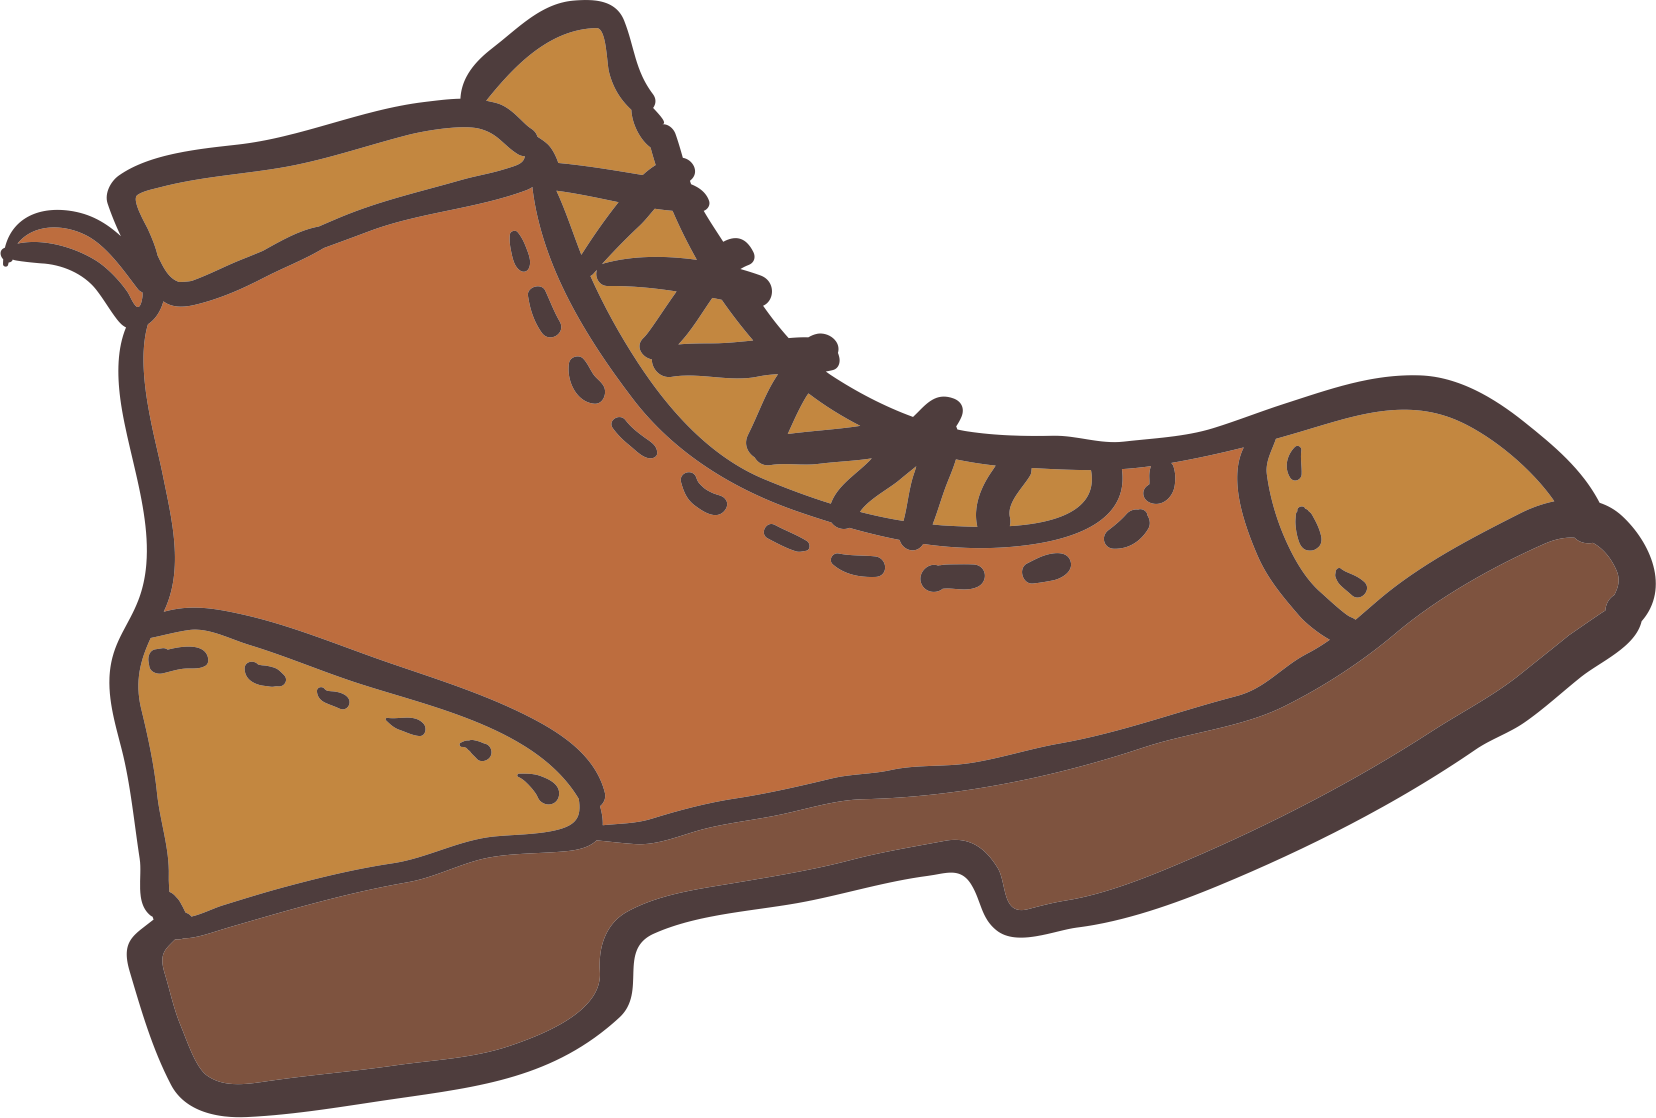 Hike clipart brown boot, Picture #1334793 hike clipart brown.